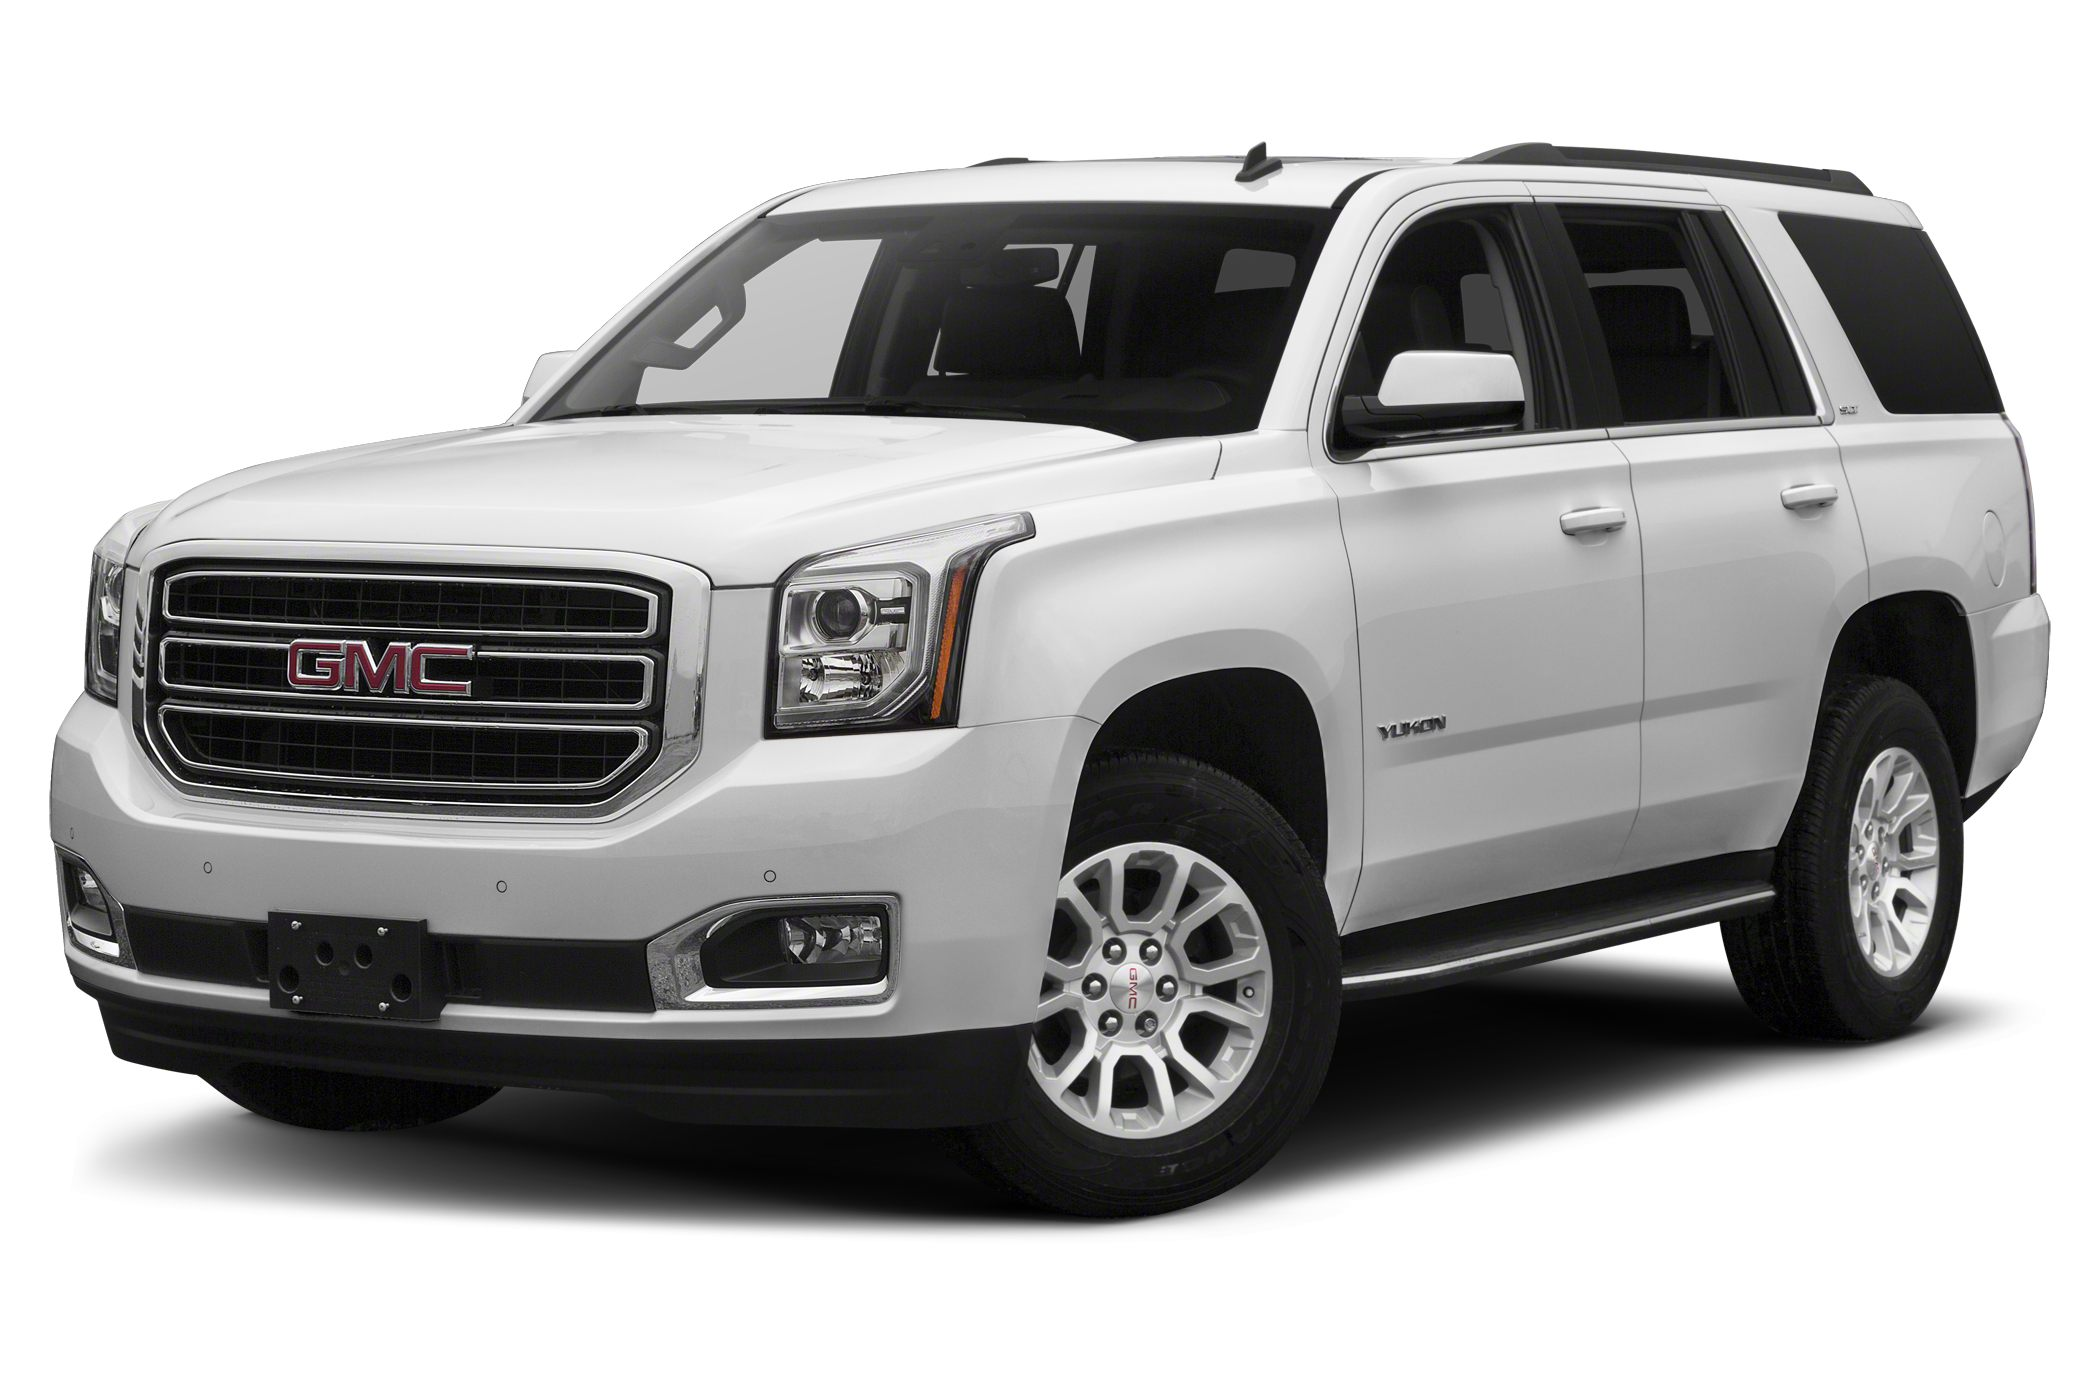 2015 GMC Yukon SLE SUV for sale in Quarryville for $51,670 with 0 miles